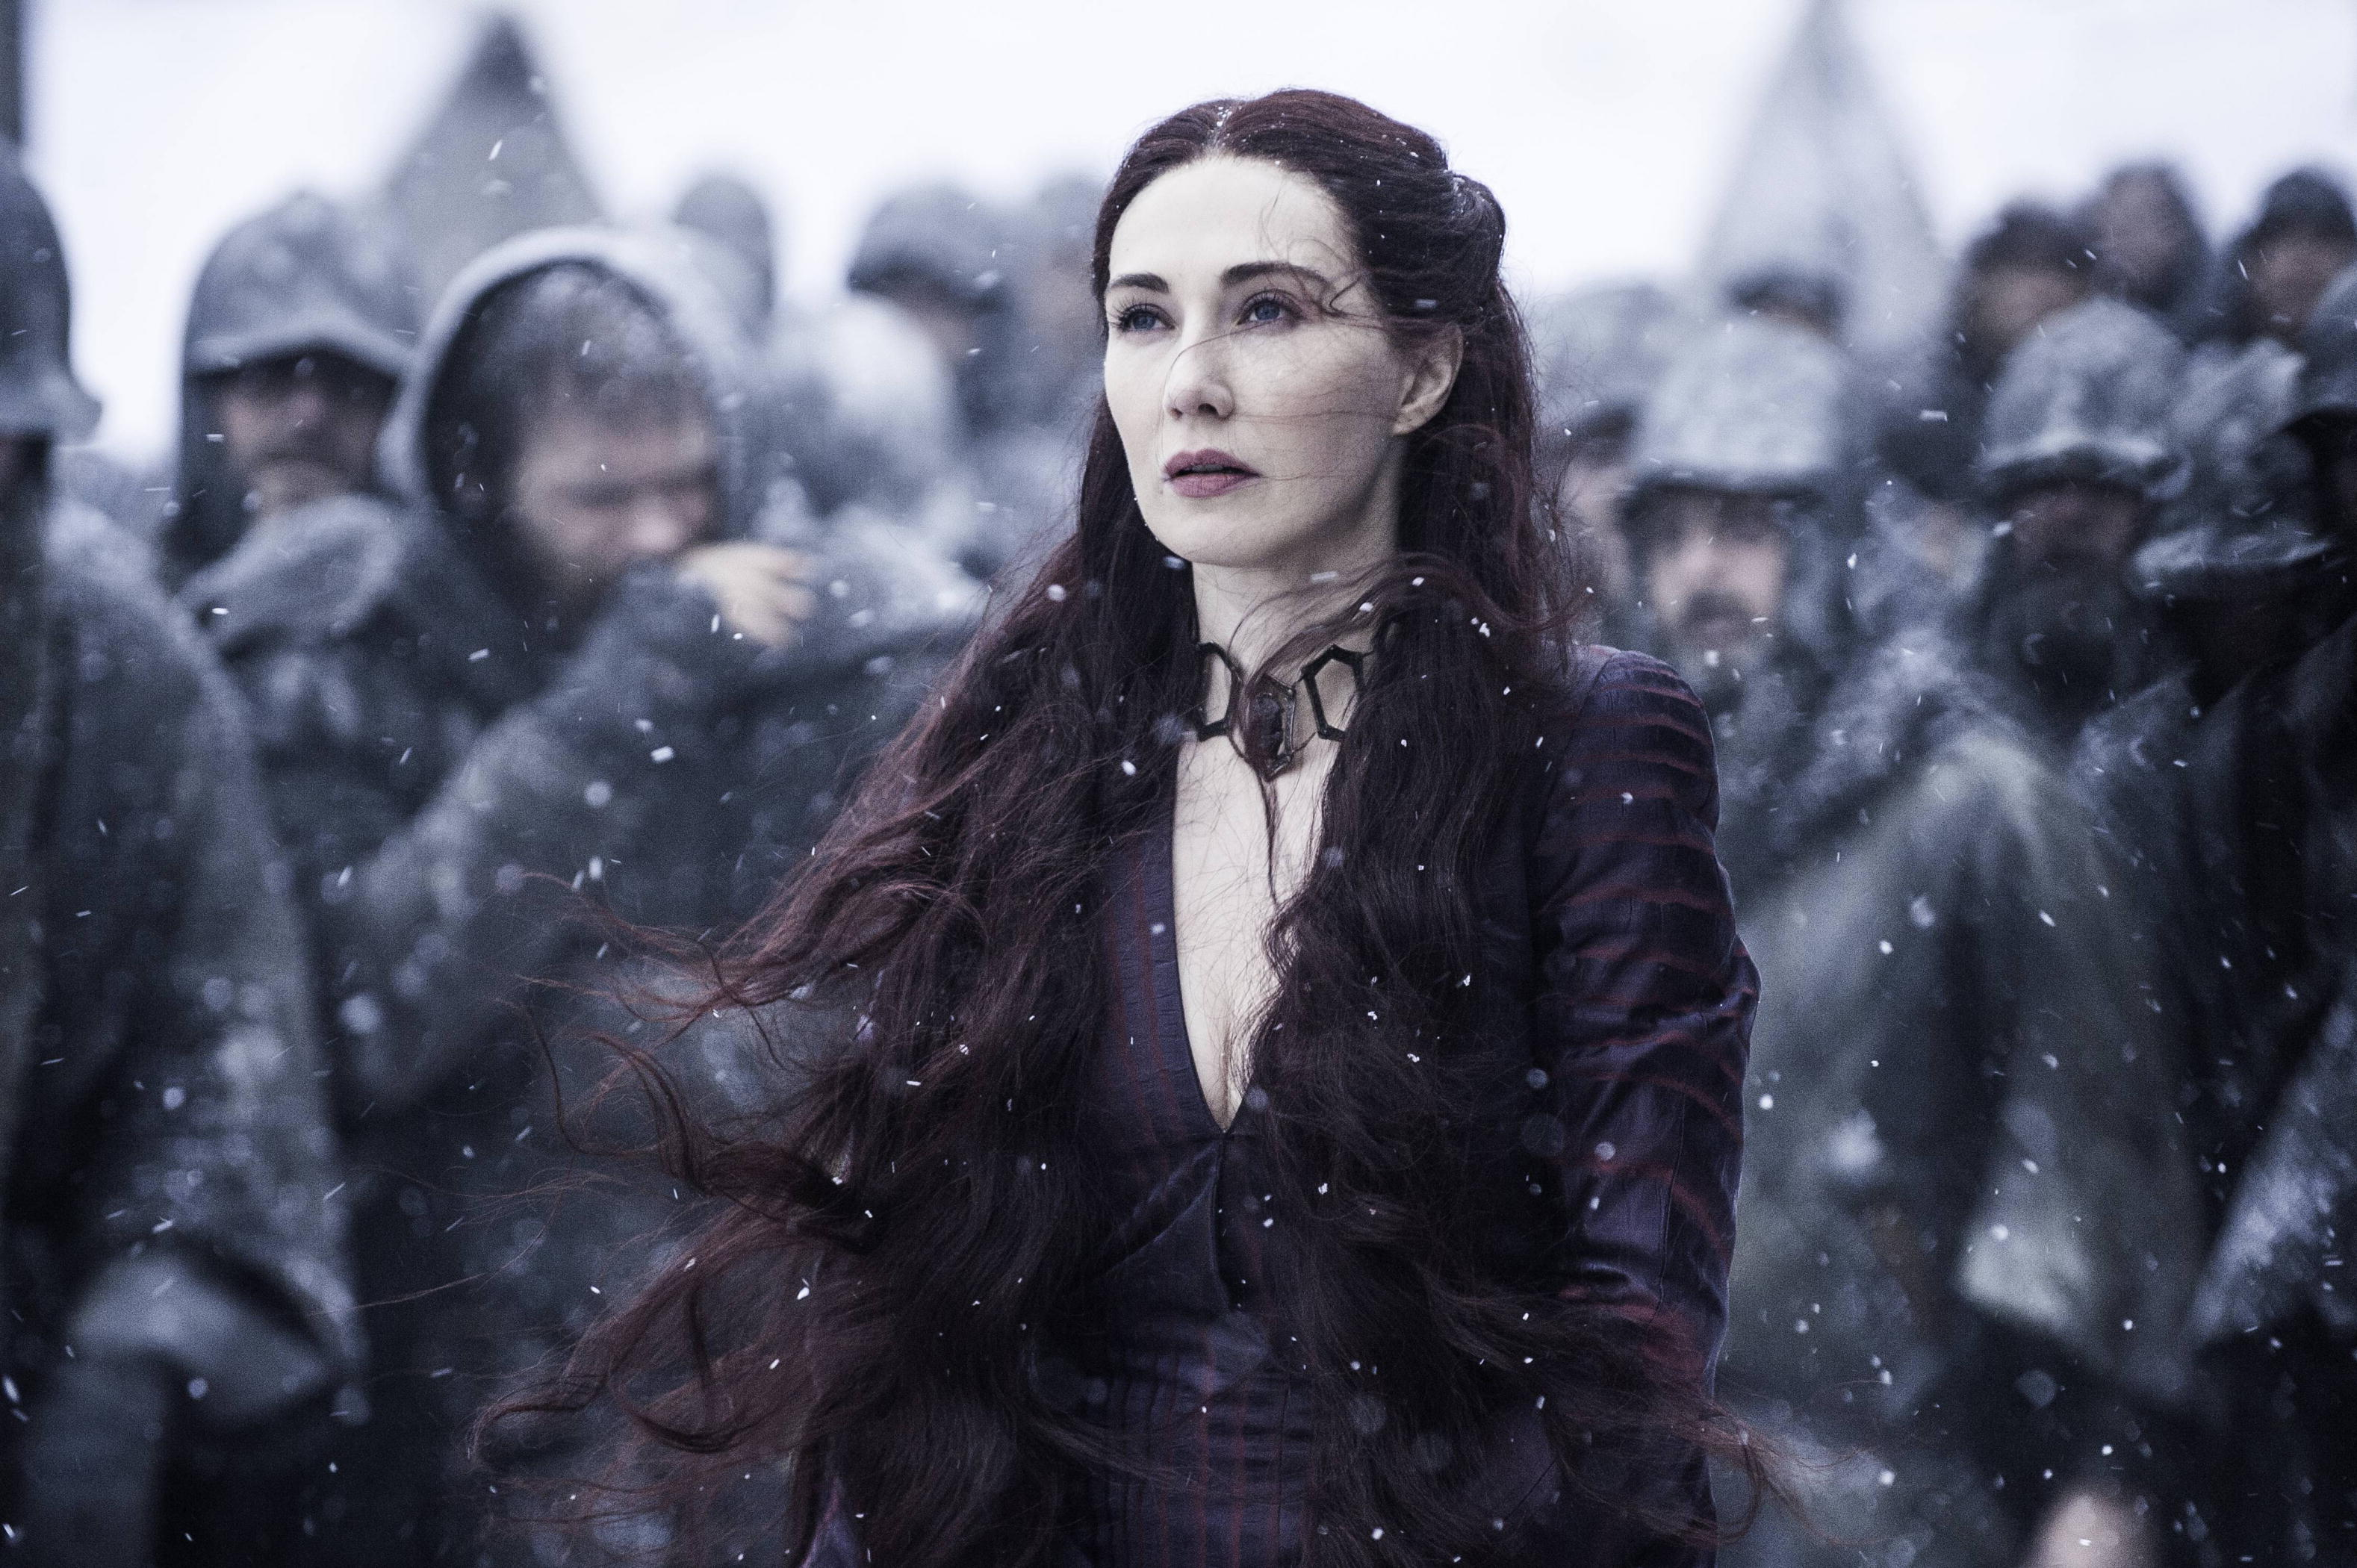 Where art thou, Melisandre?